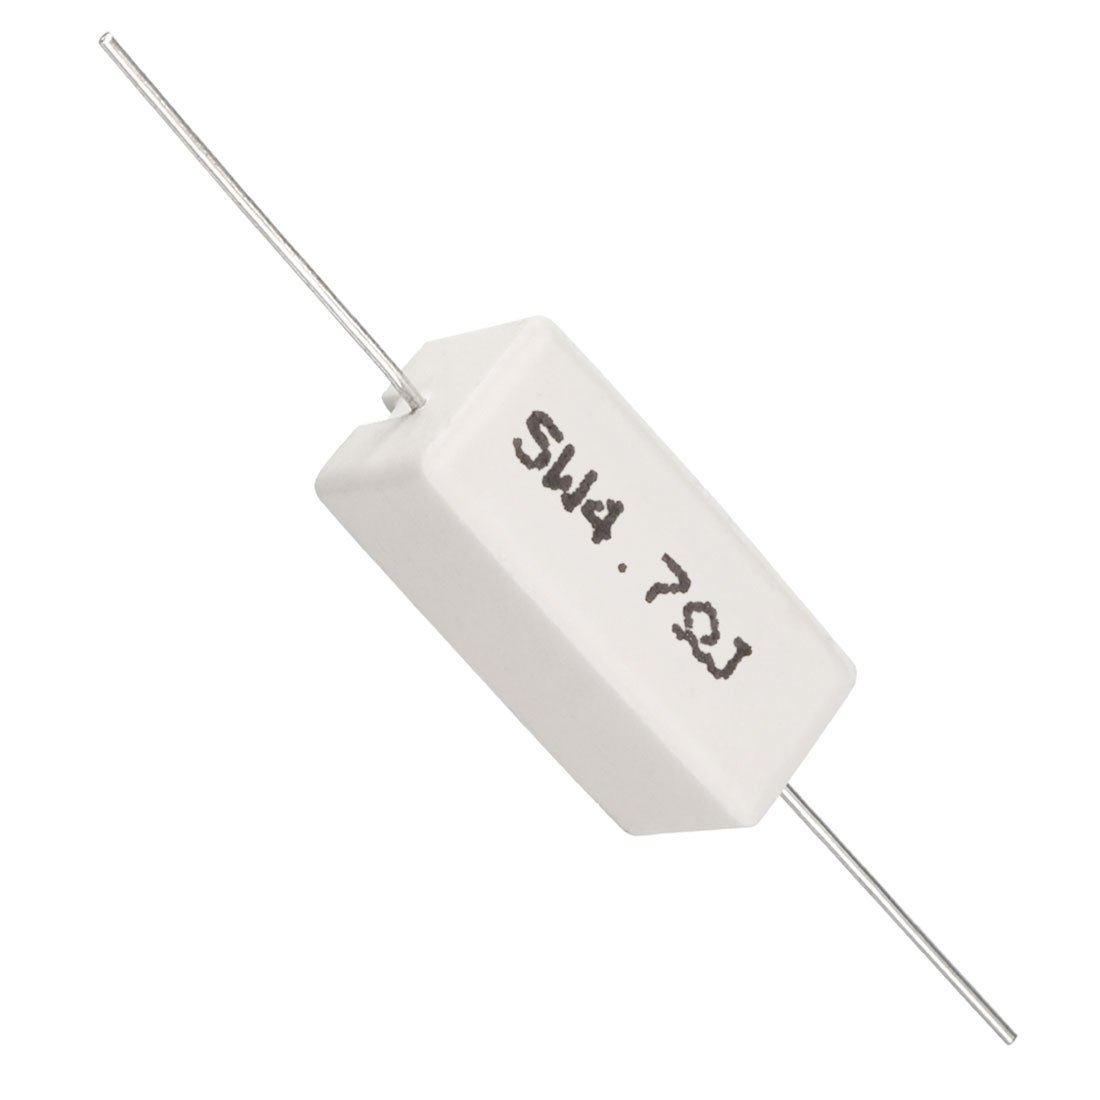 uxcell 10W 10k Ohm Power Resistor Ceramic Cement Resistor Axial Lead 5 Pcs White